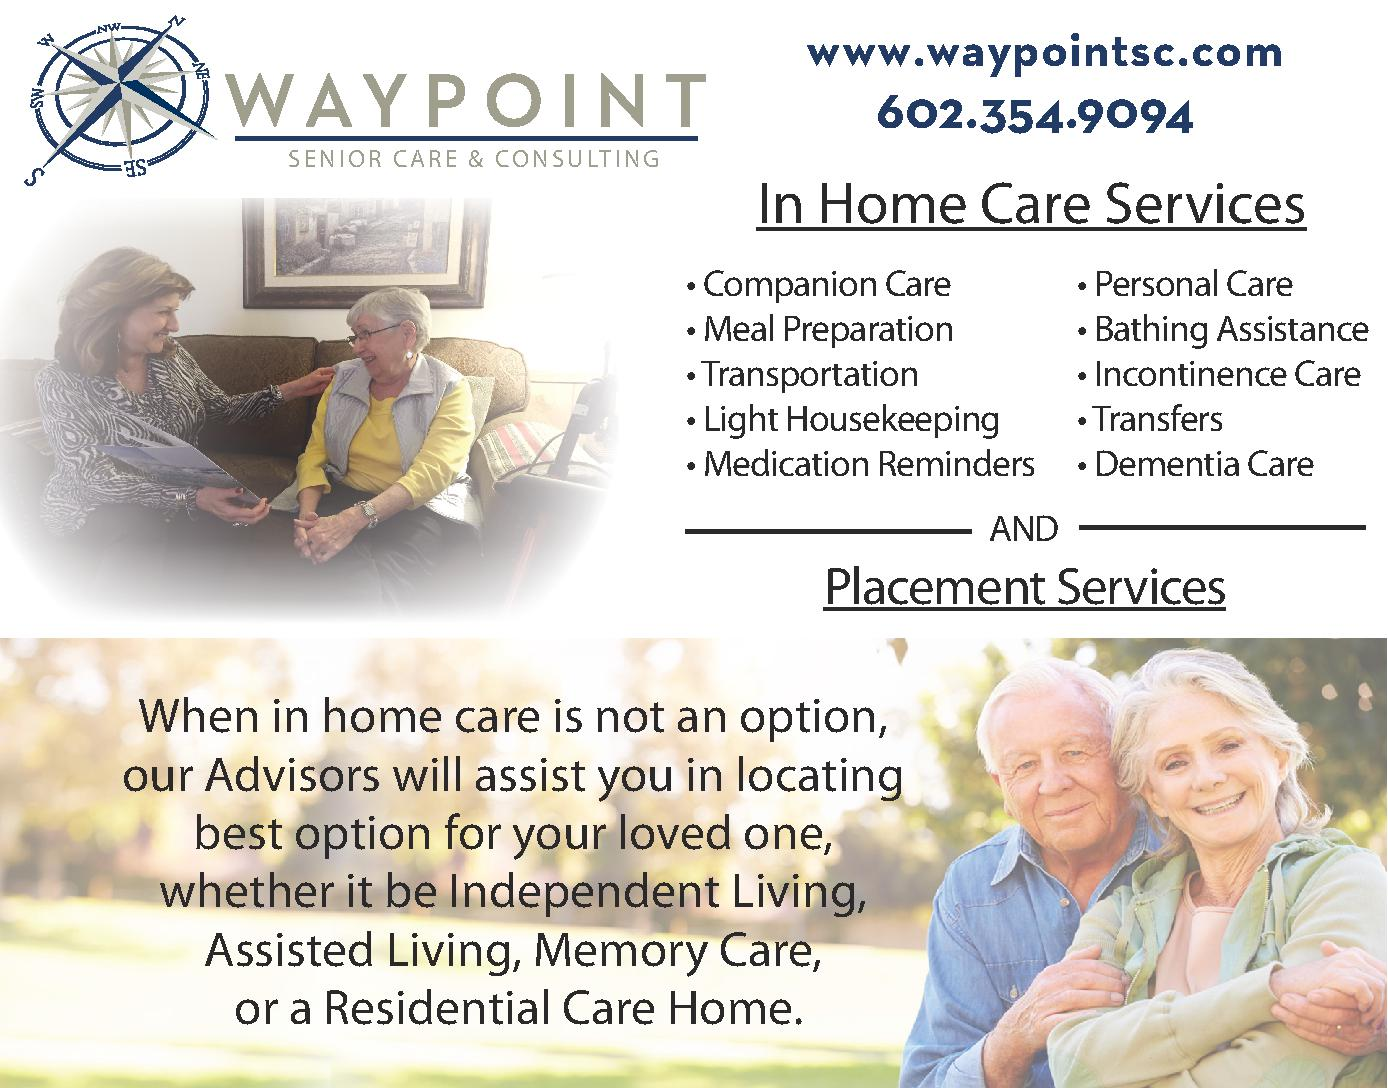 Waypoint Senior Care and Consulting